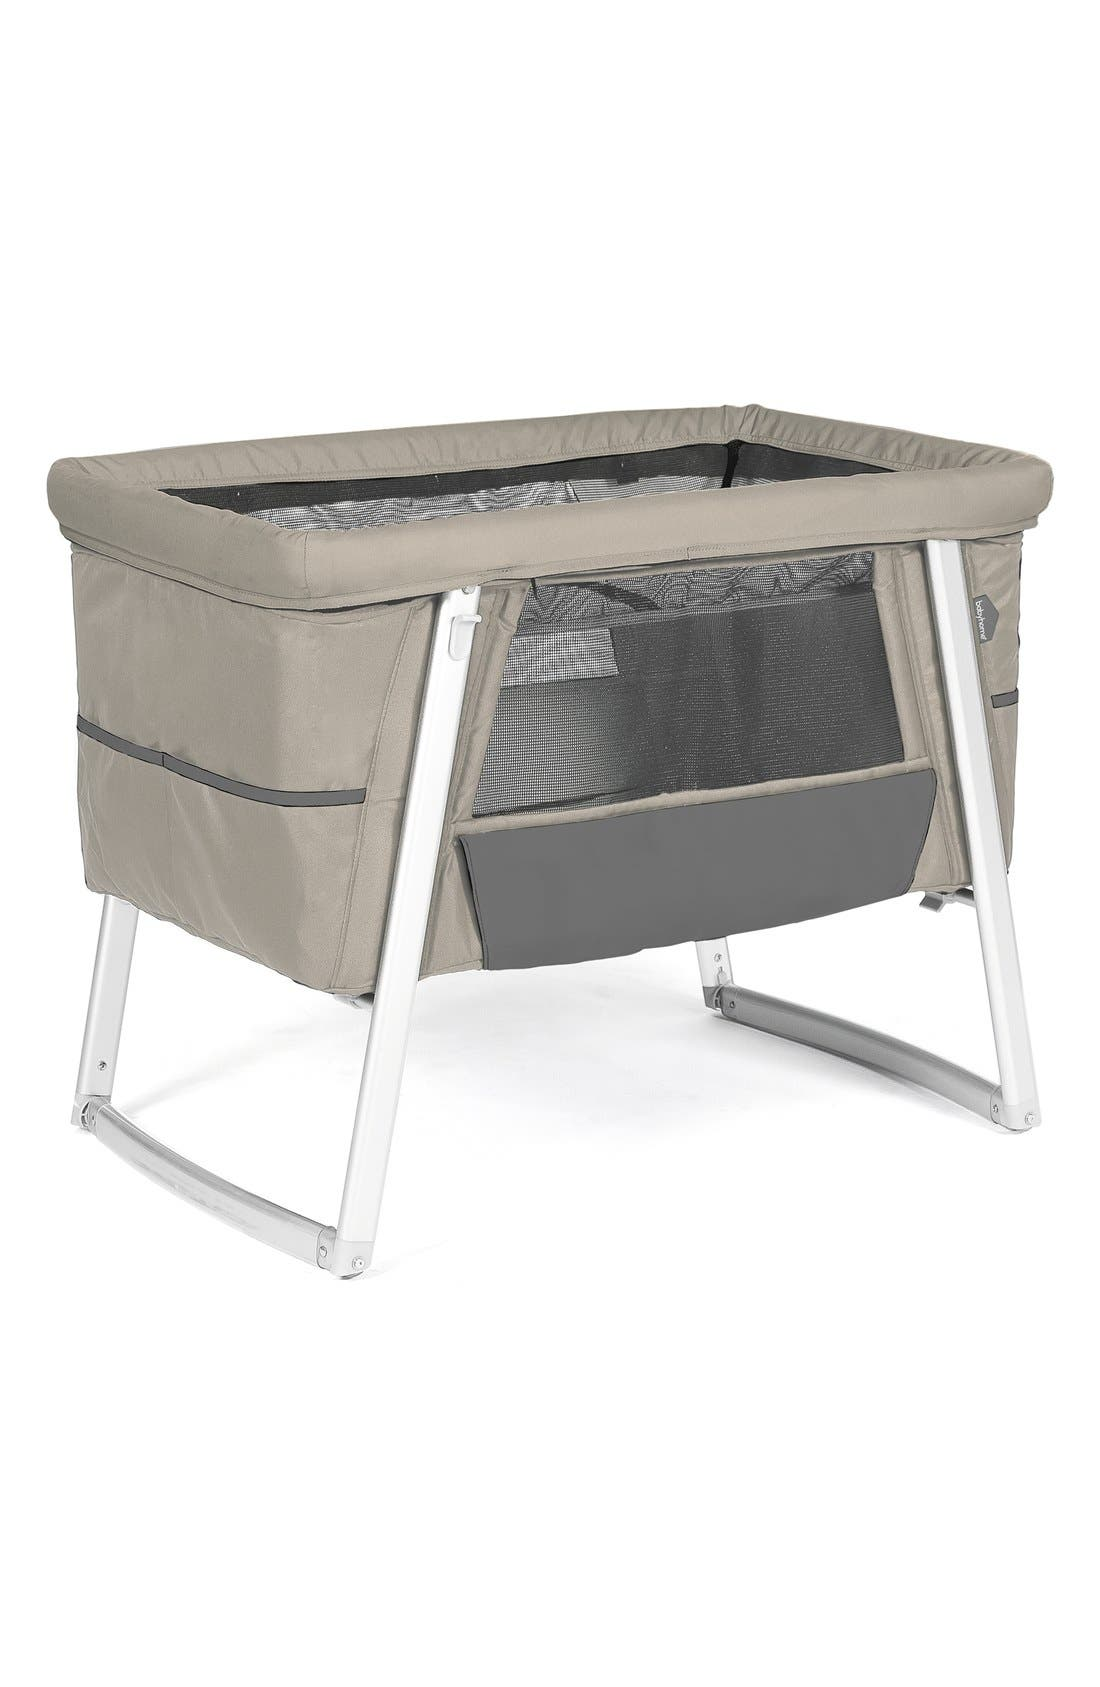 BABYHOME 'Air' Bassinet